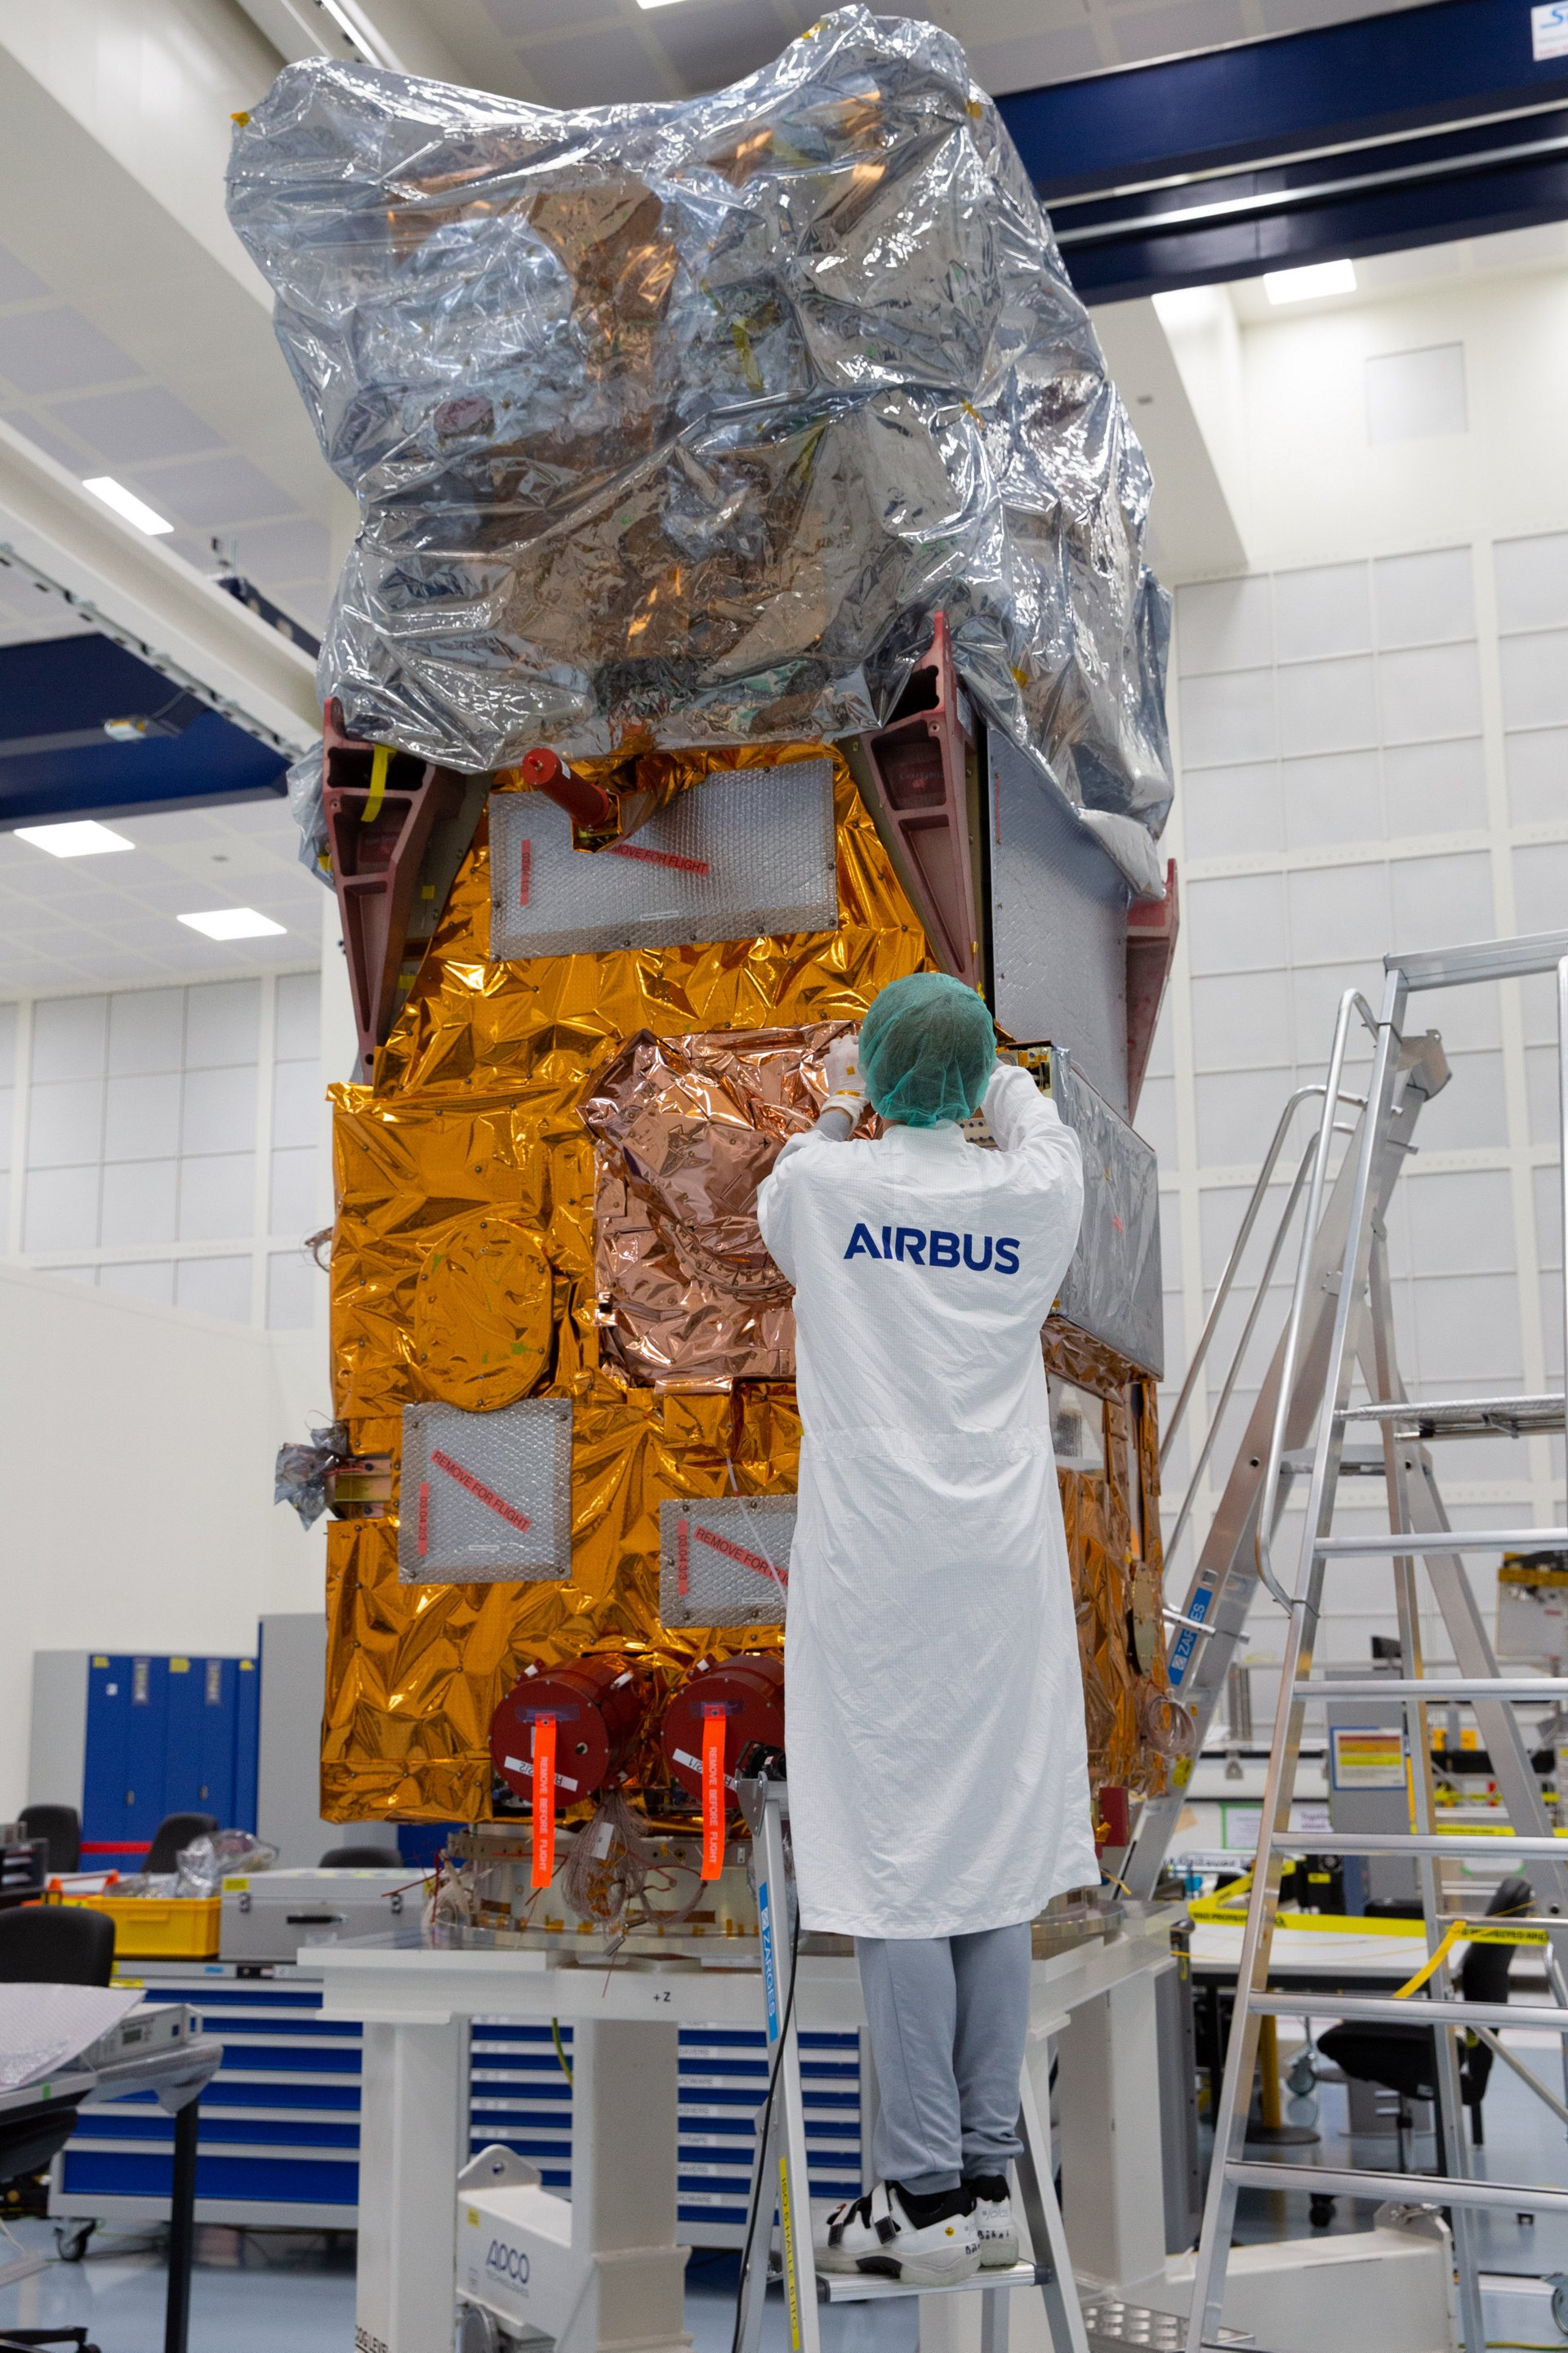 Airbus has finished the integration of the Copernicus Sentinel-2C satellite. It is the third of its kind and will now be shipped to Munich to undergo extensive environmental tests to prove its readiness for space. The test campaign will last until March 2022.